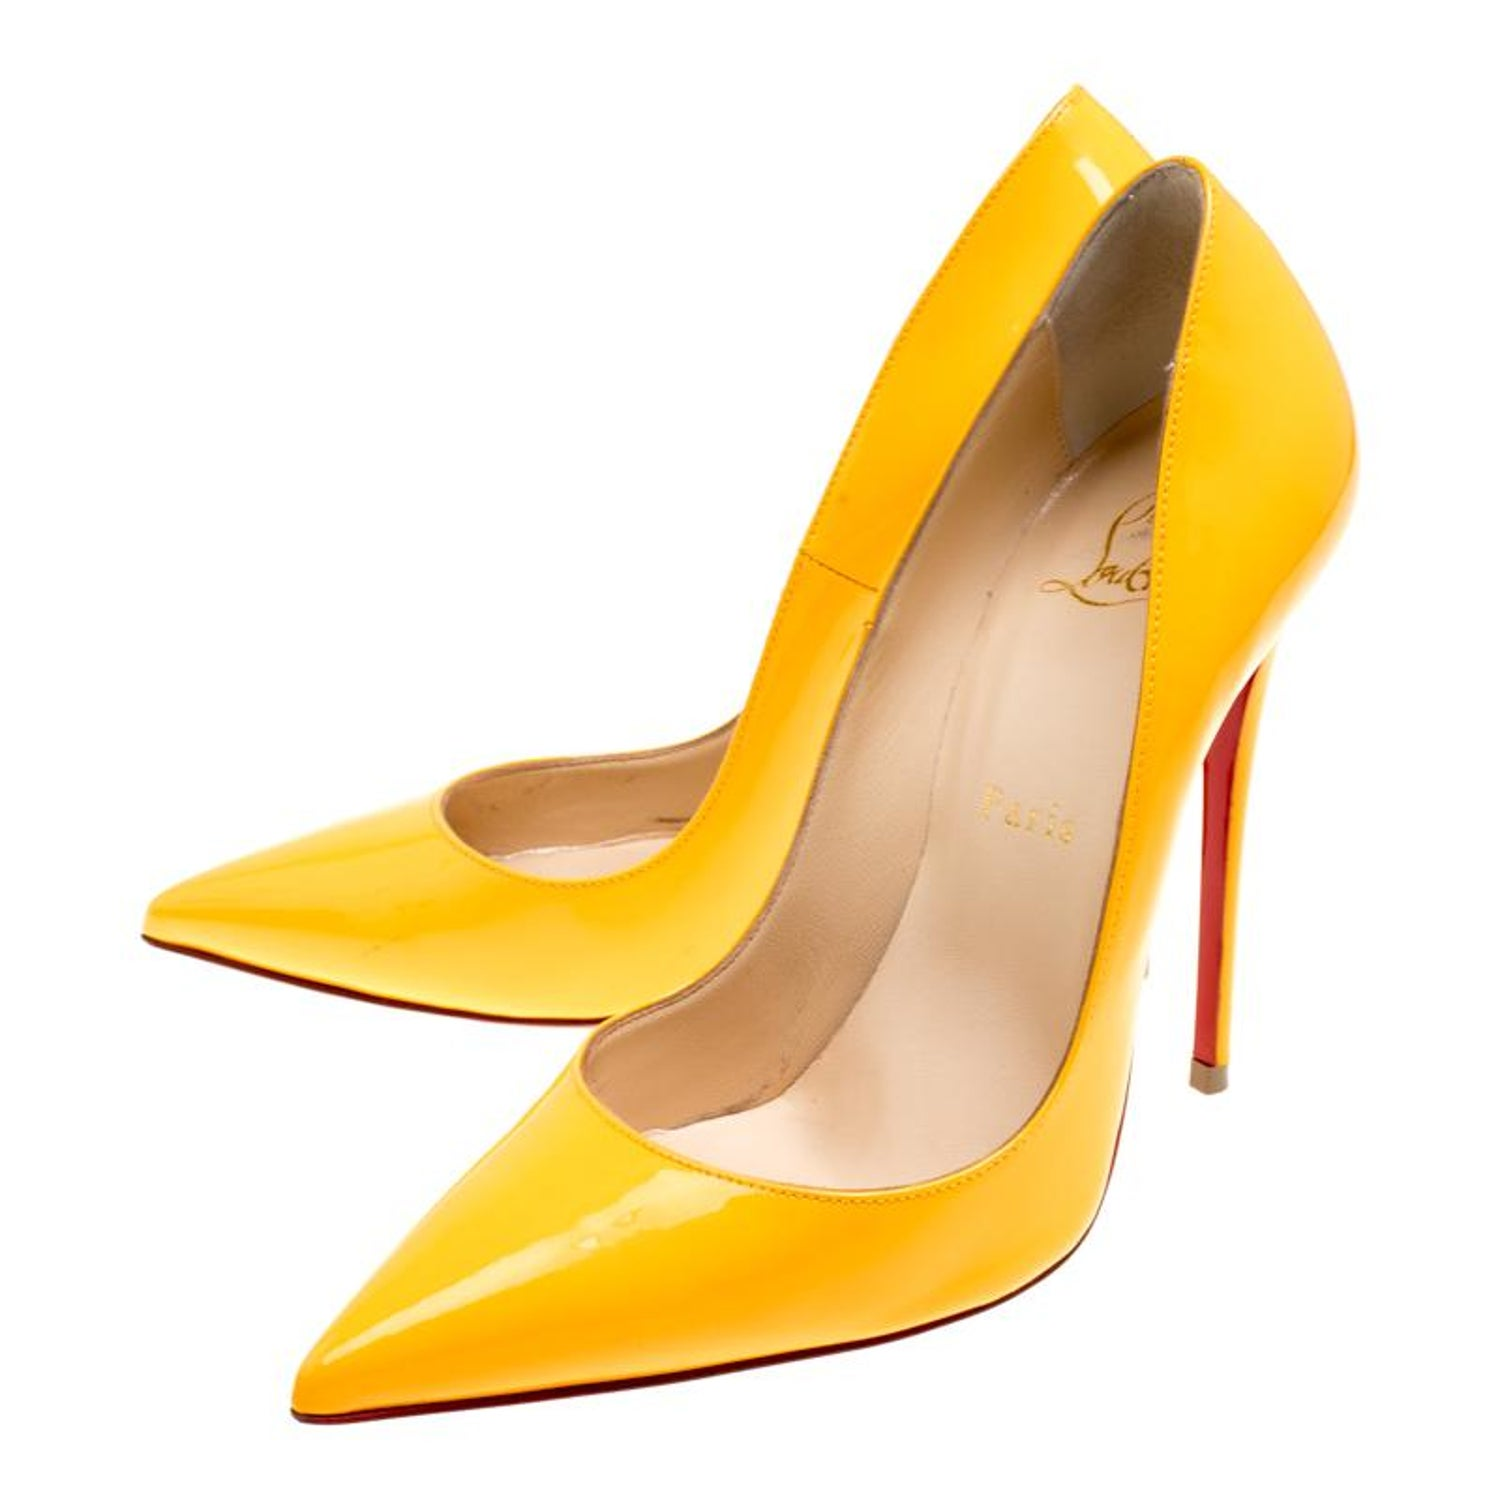 003e355f39e4 Mustard Yellow Patent Leather Pigalle Pointed Toe Pumps Size 37.5 For Sale  at 1stdibs